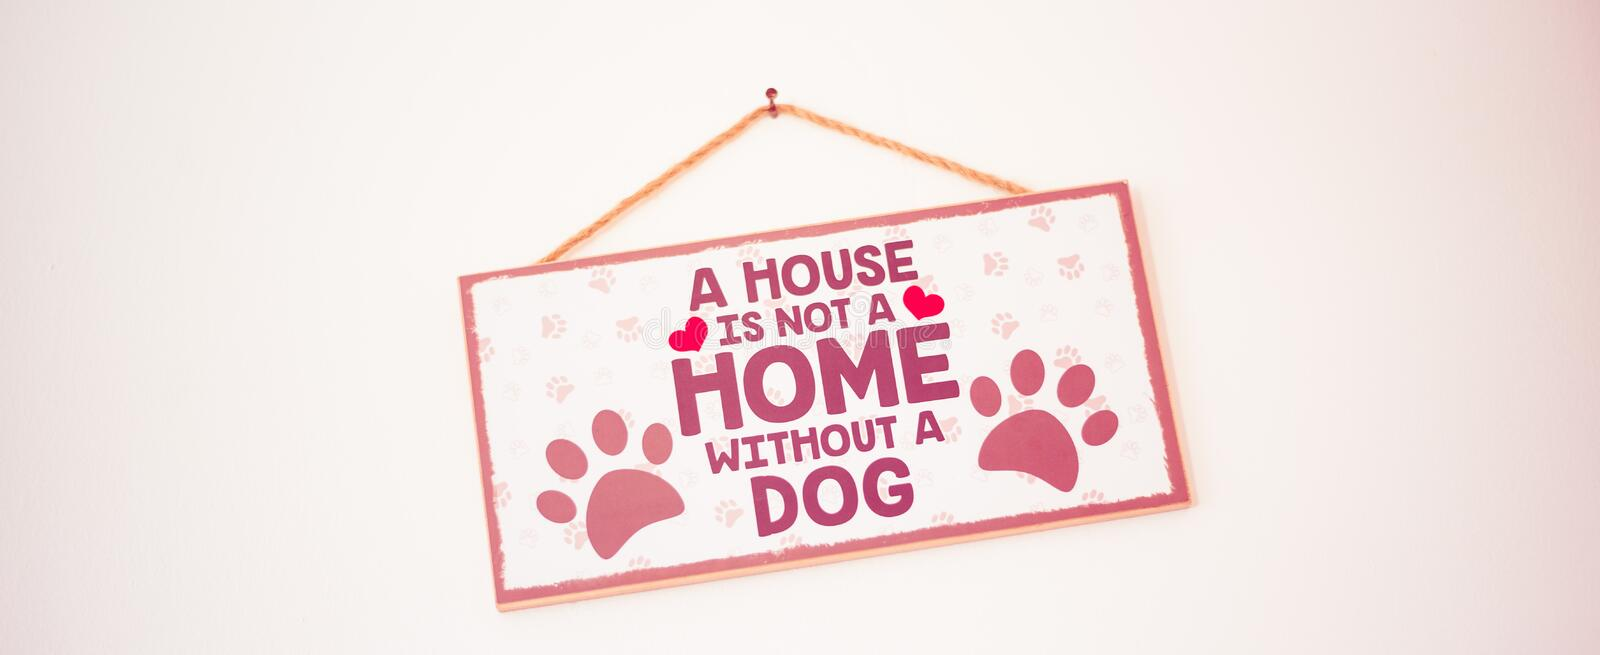 Stirling/Scotland - 7 July 2019: A house is not a home without a dog royalty free stock photos